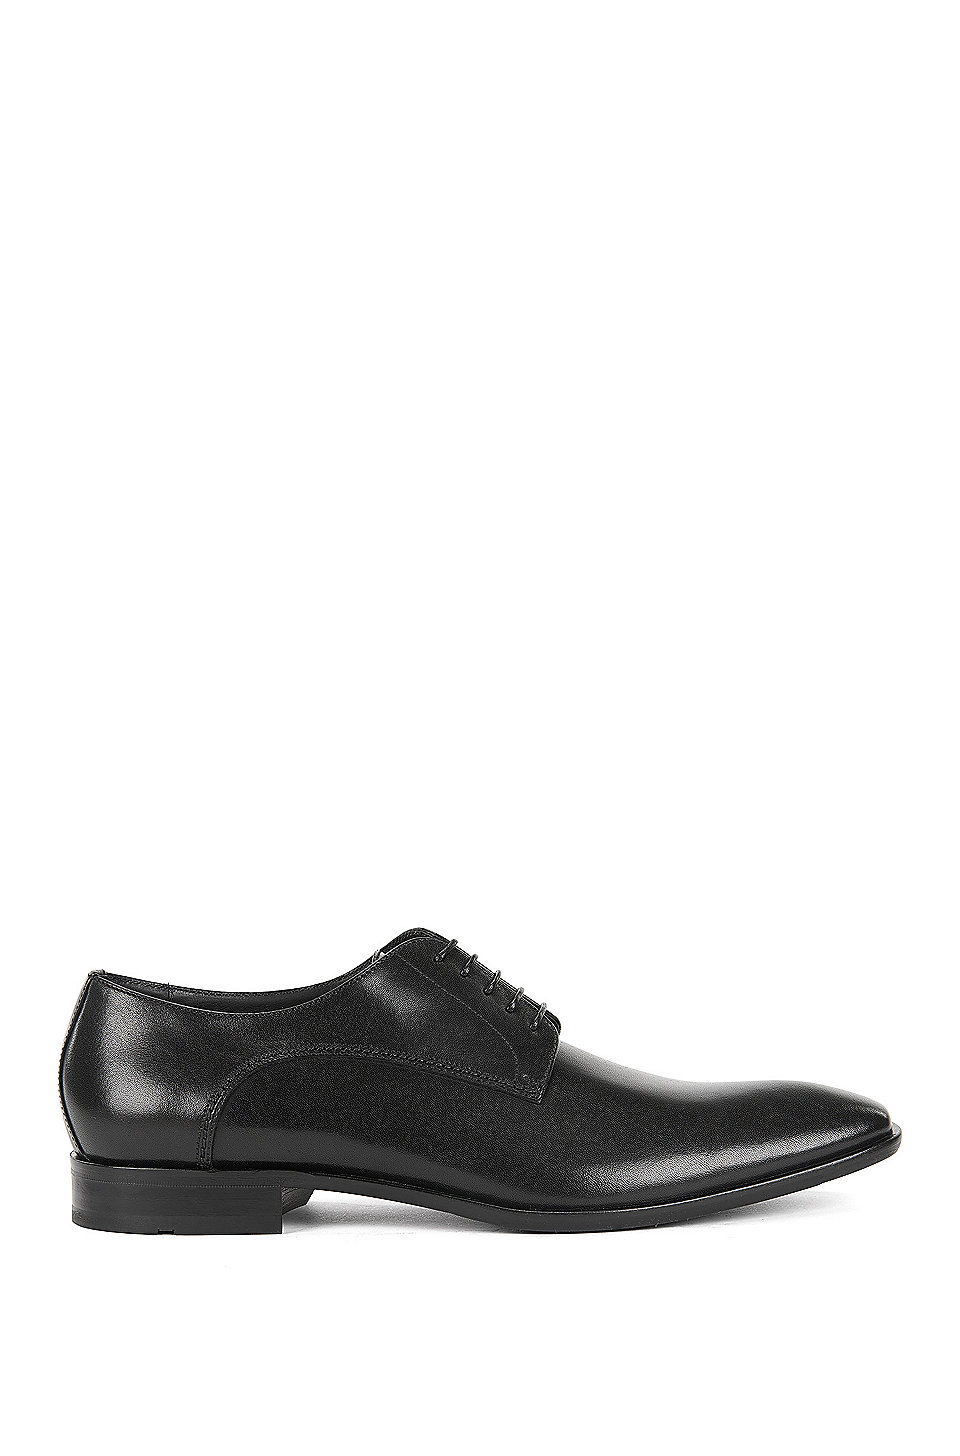 Leather Oxford shoes with antique finish, Black